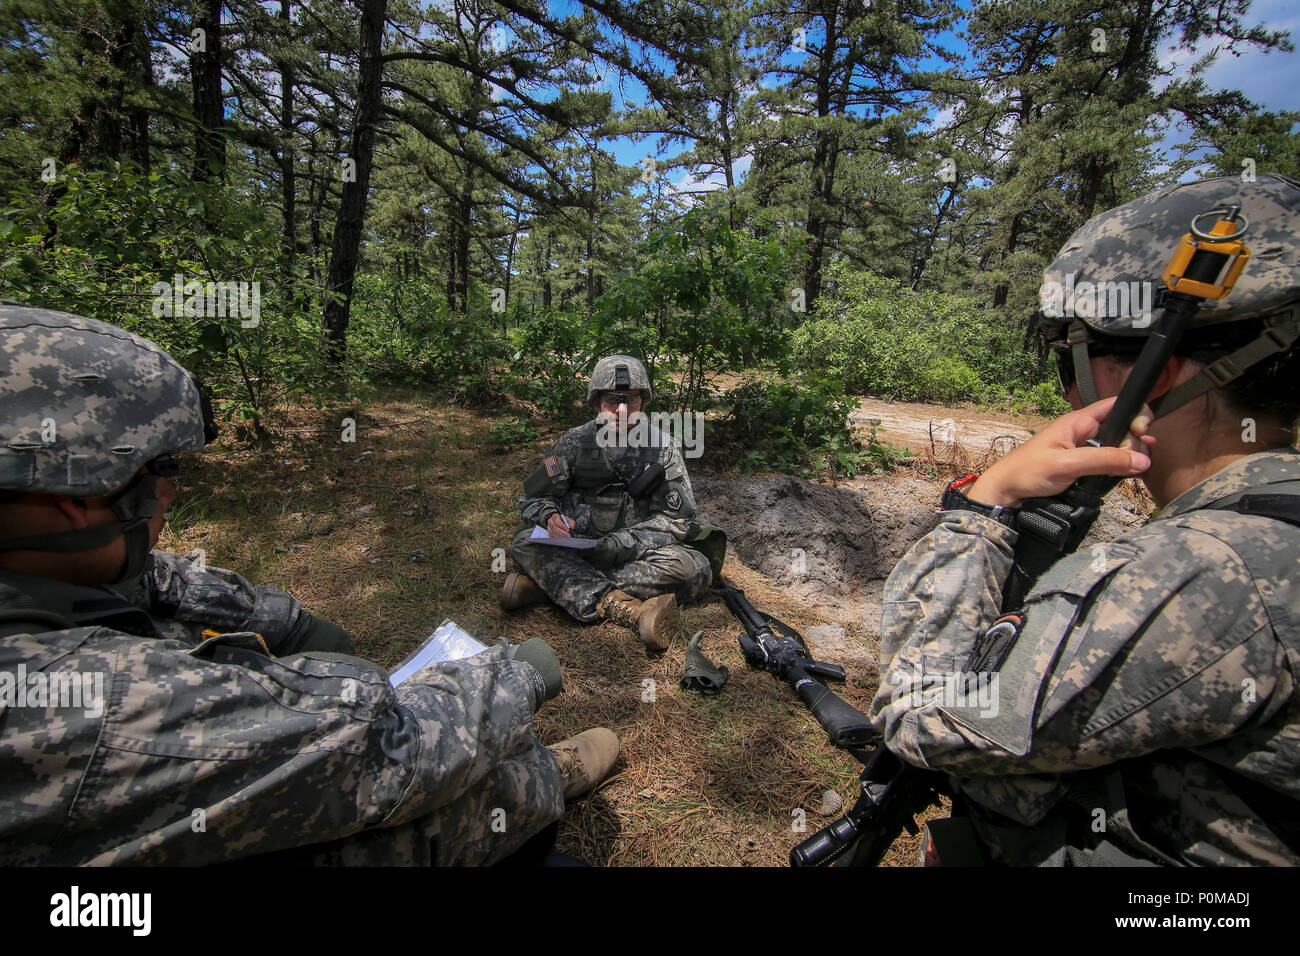 U.S. Army National Guard Soldiers from New Jersey's 250th Finance Detachment discuss sectors of fire during training on Joint Base McGuire-Dix-Lakehurst, N.J., June 5, 2018. The 250th Finance Detachment was trained in base defense by instructors from the U.S. Army's 174th Infantry Brigade. (U.S. Air National Guard photo by Master Sgt. Matt Hecht) - Stock Image